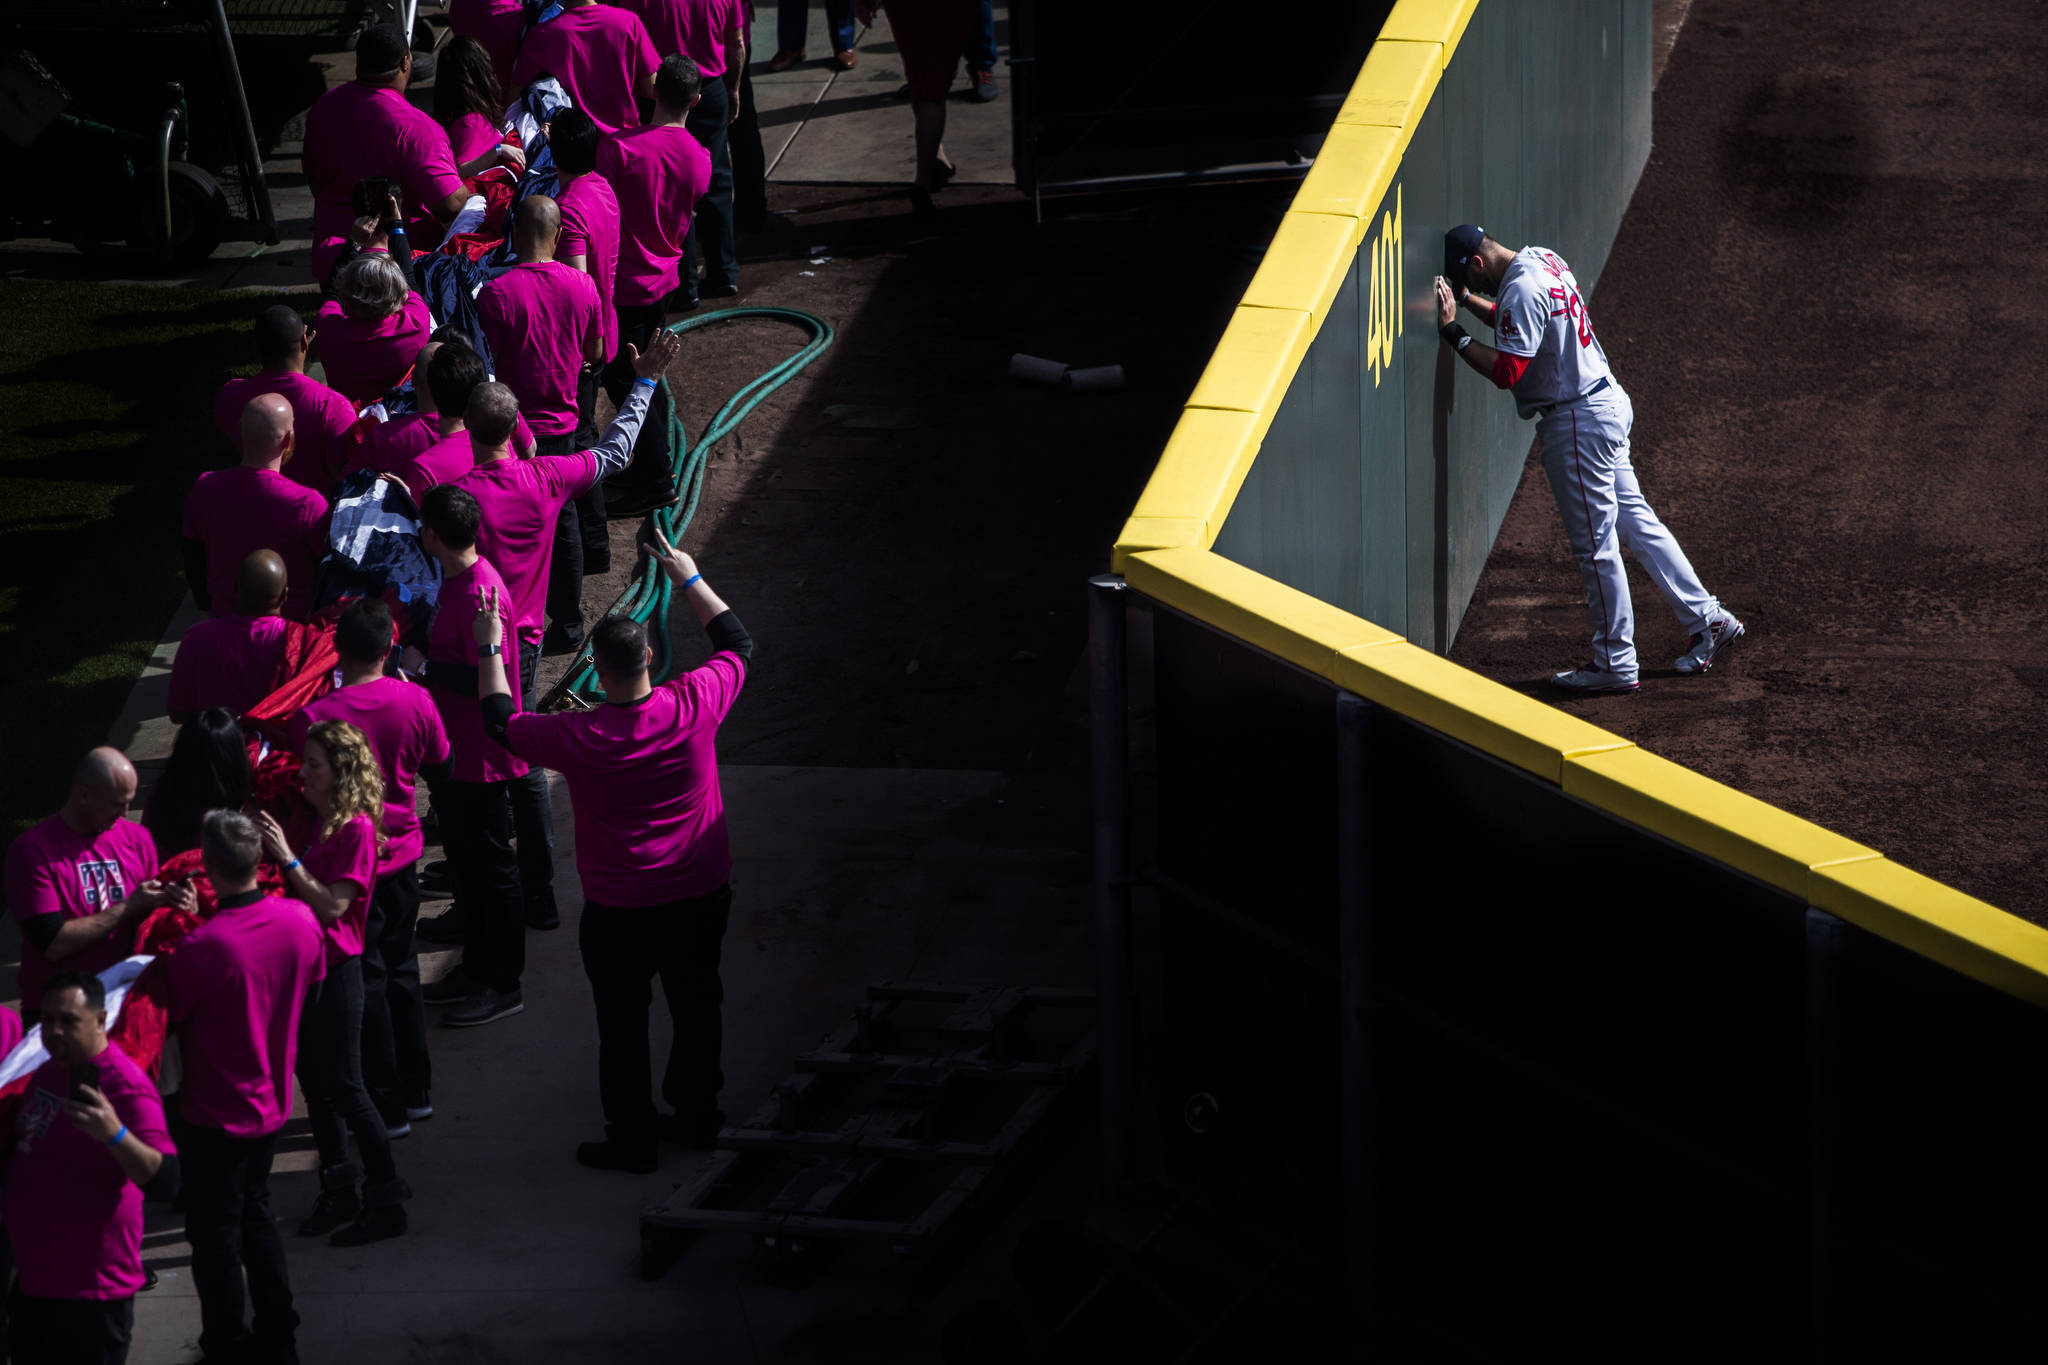 Boston Red Sox's J.D. Martinez says a prayer in the outfield before the start of the game during Opening Day at T-Mobile Park on Thursday, March 28, 2019 in Seattle, Wash. (Olivia Vanni / The Herald)